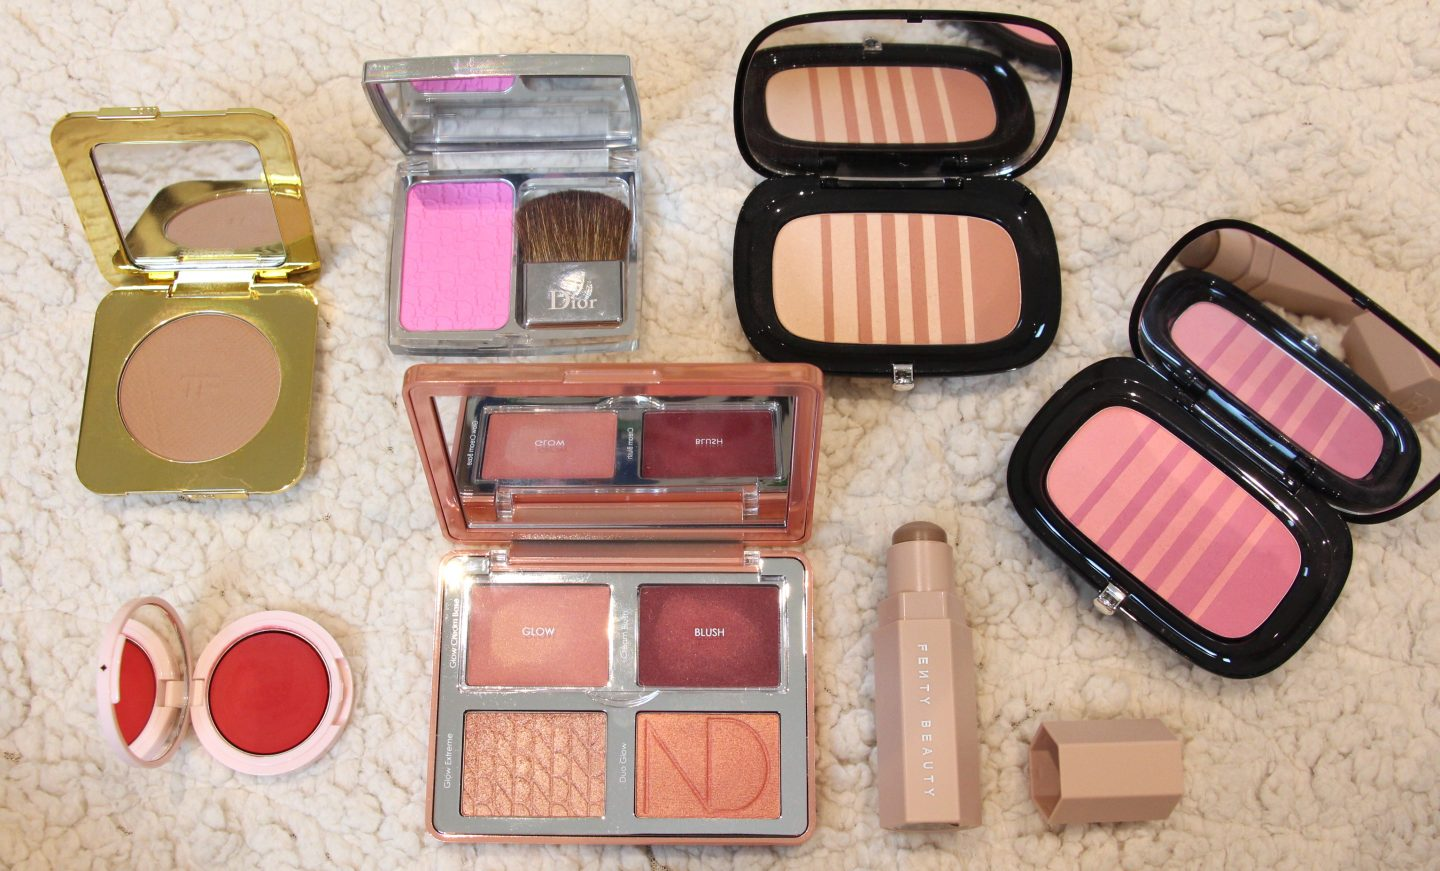 Tom Ford Soleil Glow Bronzer in Terra, Dior Diorskin Rosy Glow Healthy glow booster blush 001 petal, Marc Jacobs Air Blush Soft Glow Duo in Flesh and Fantasy and Lush and Libido, Jillian Dempsey Cheek Tint in Scarlet, Natasha Denona Bloom palette, Fenty Beauty Matte Skinstick in Amber